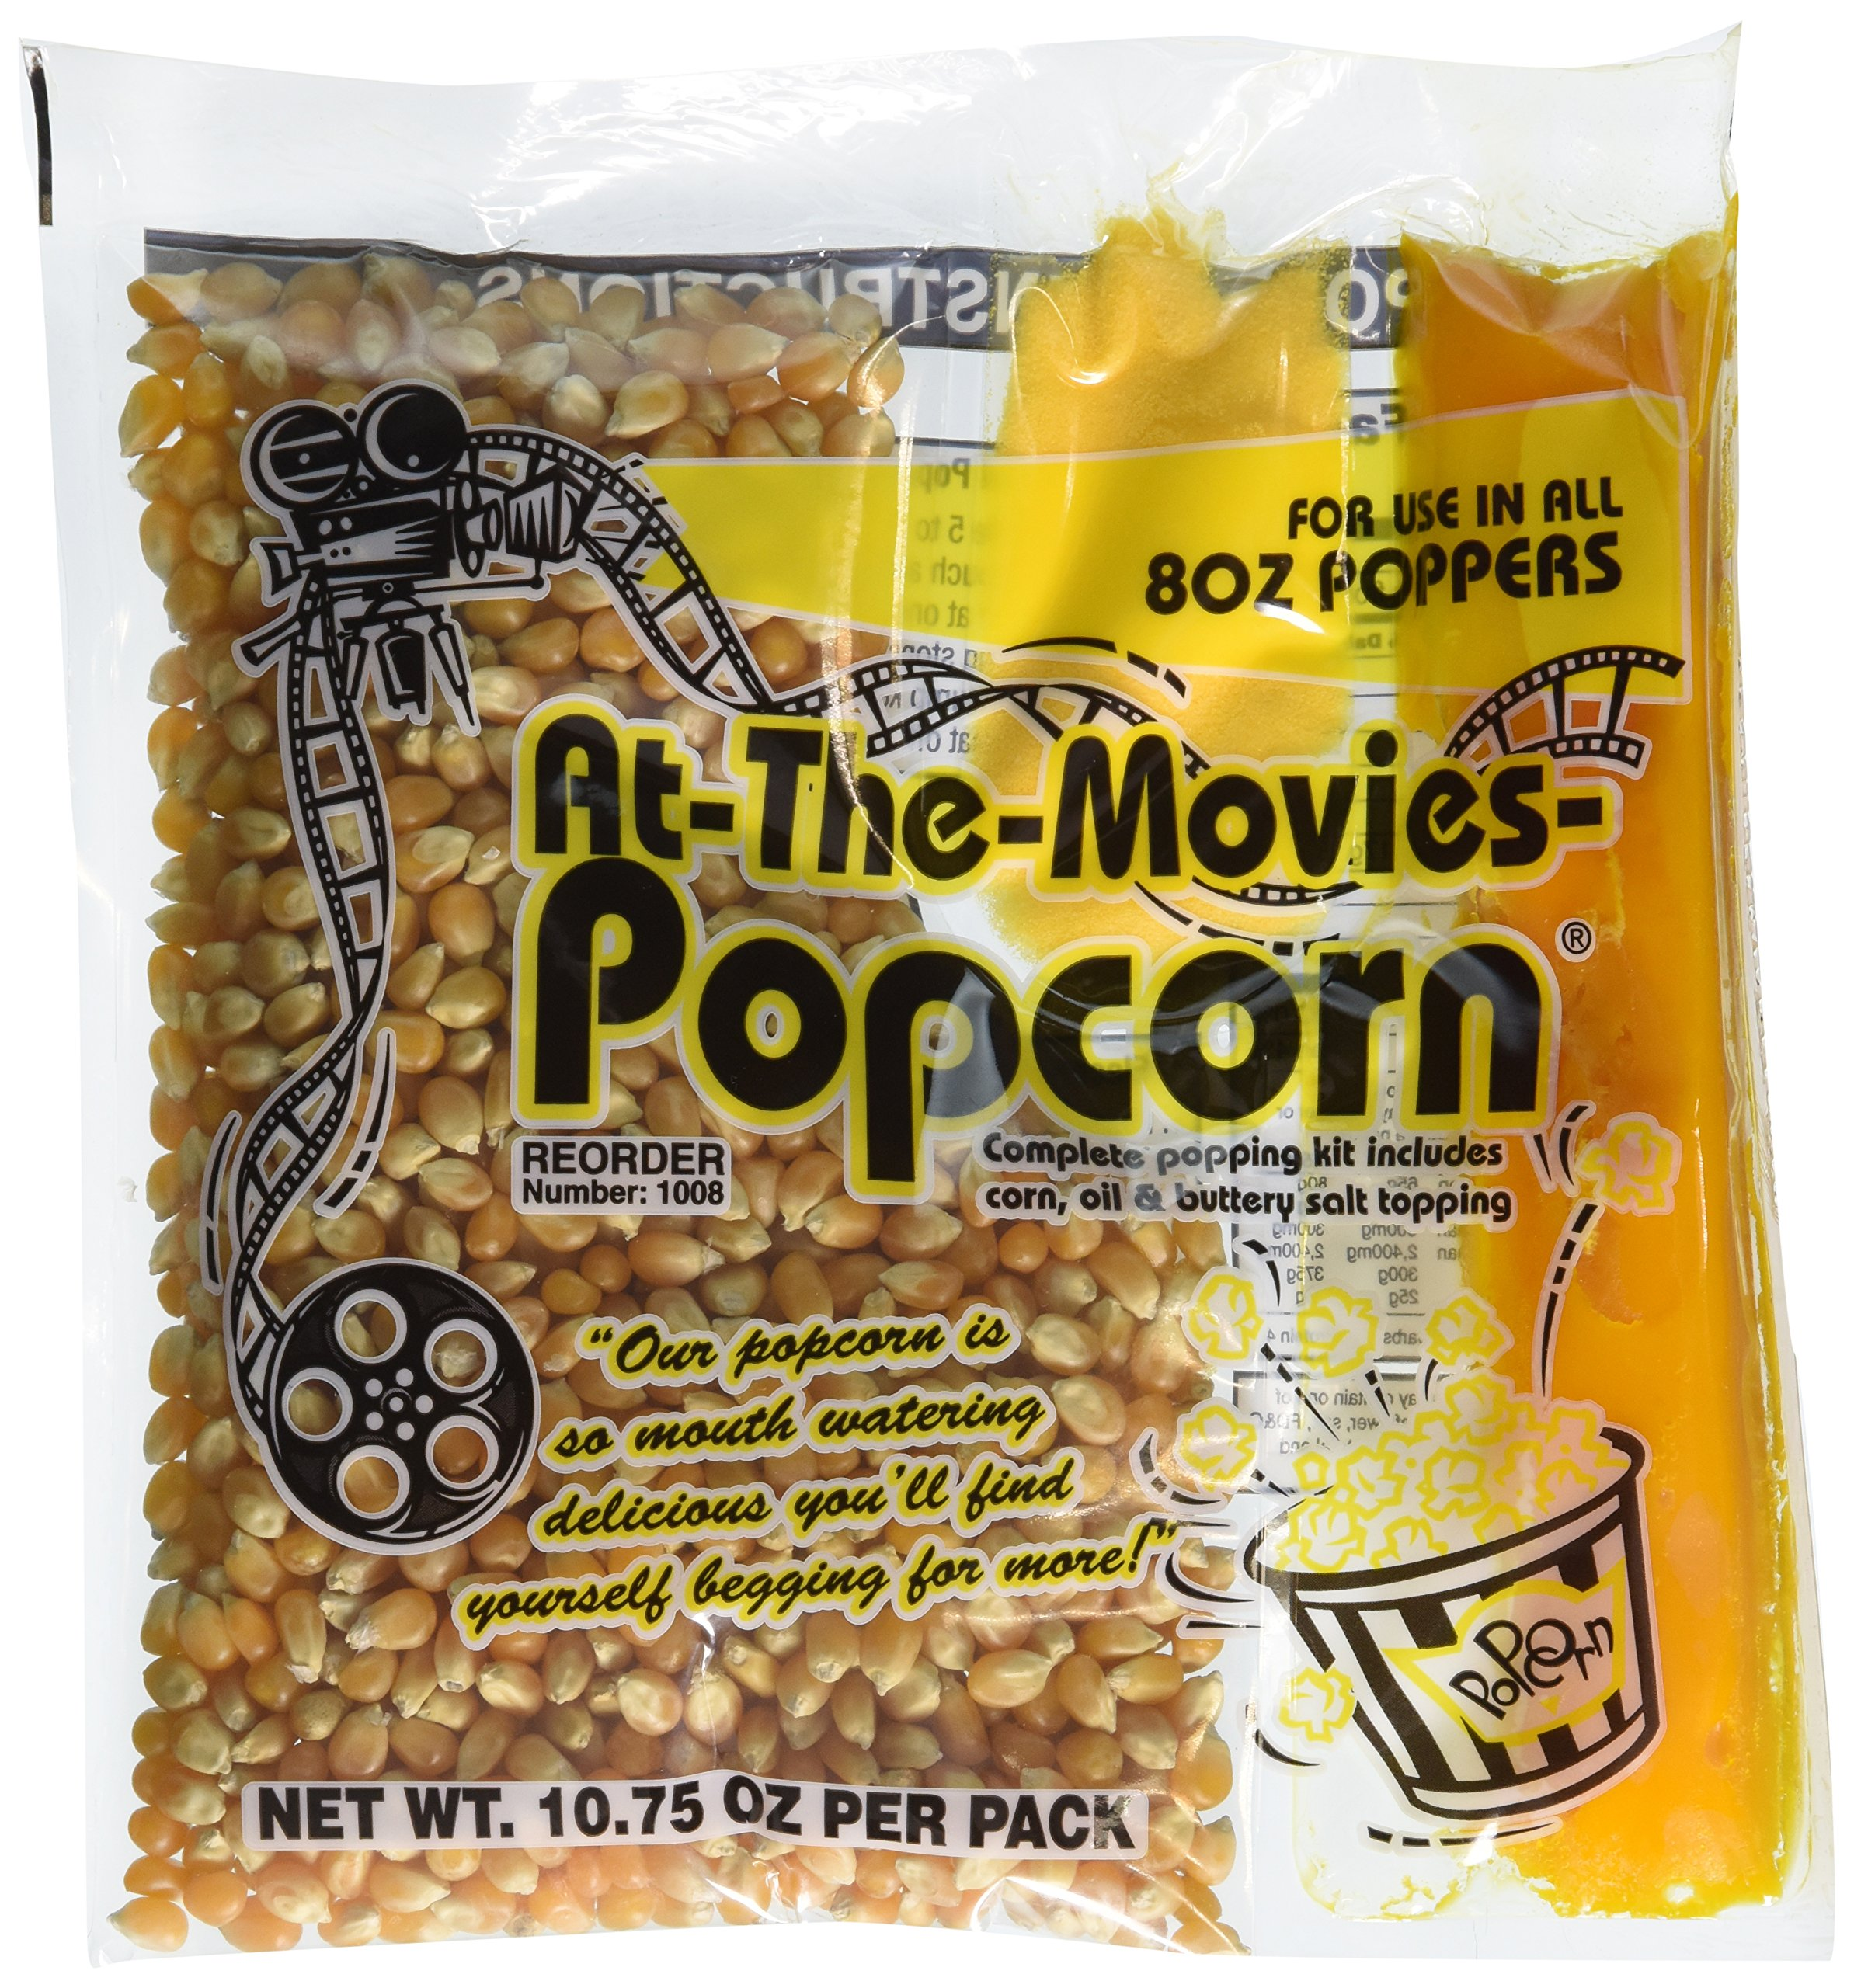 At-The-Movies Popcorn & Coconut Oil Portion Packs-Case of 24 (8oz Kettle) by At-The-Movies-Popcorn